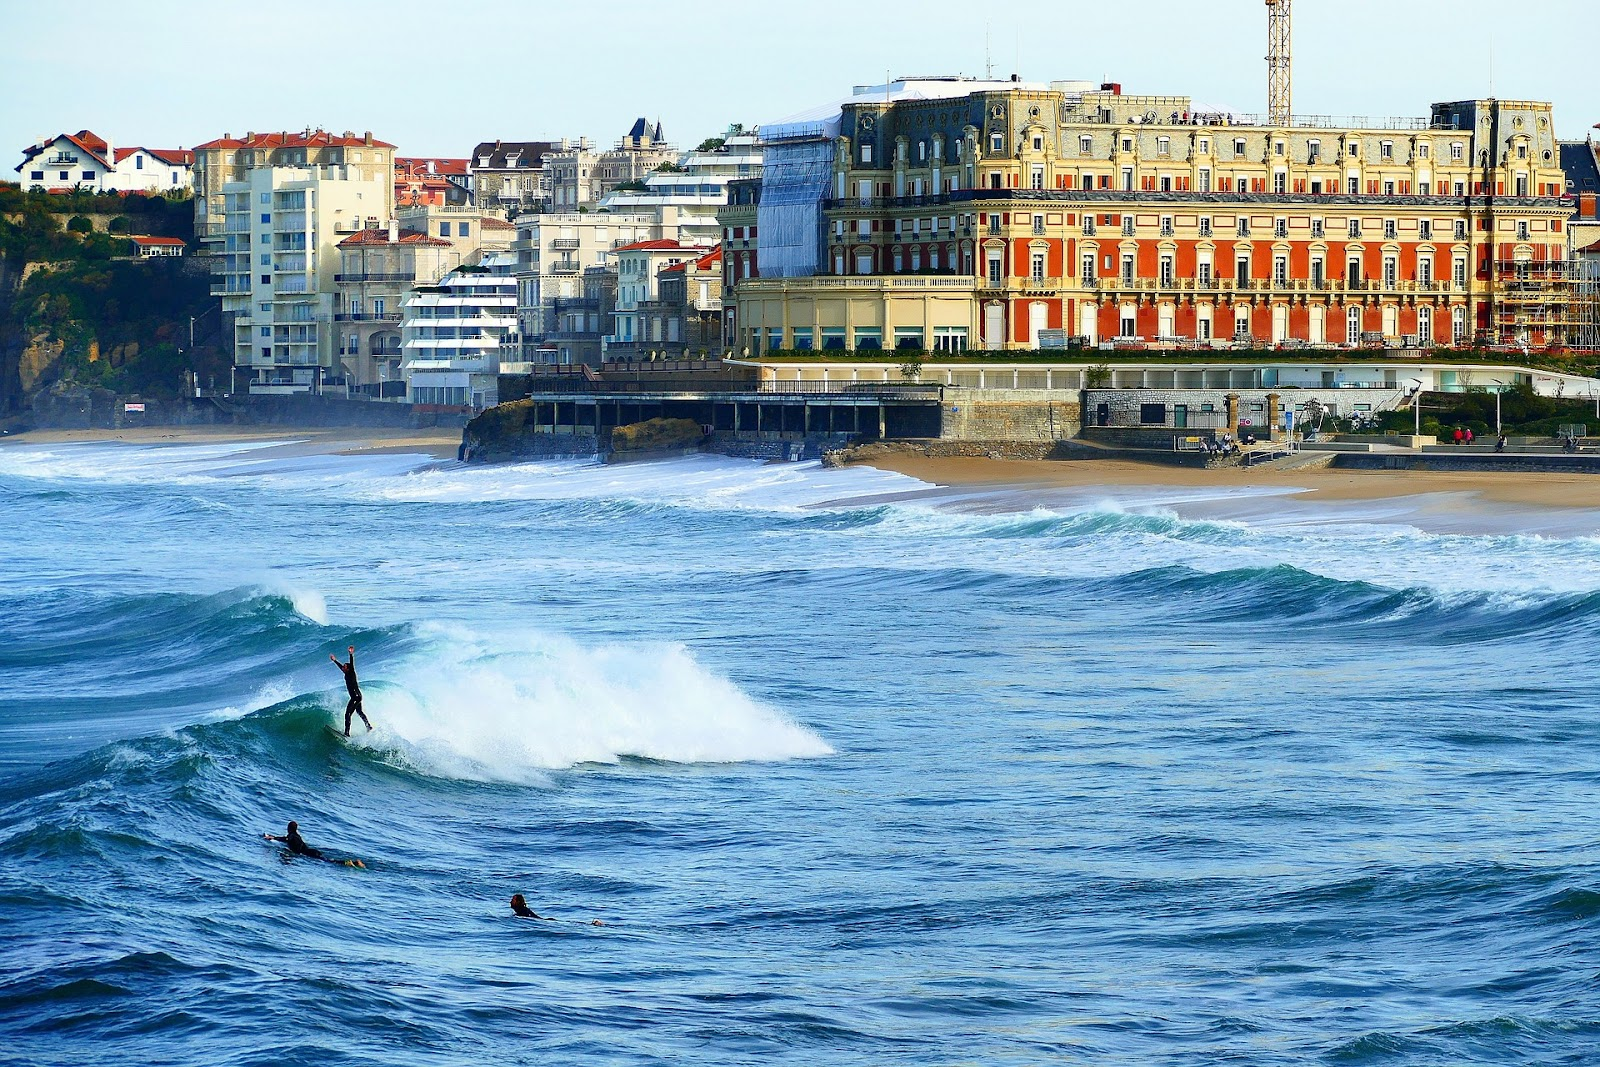 biarritz grand plage sandy beach and wavy ocean with surfers, colorful buildings seaside buildings in the background during sunset in france